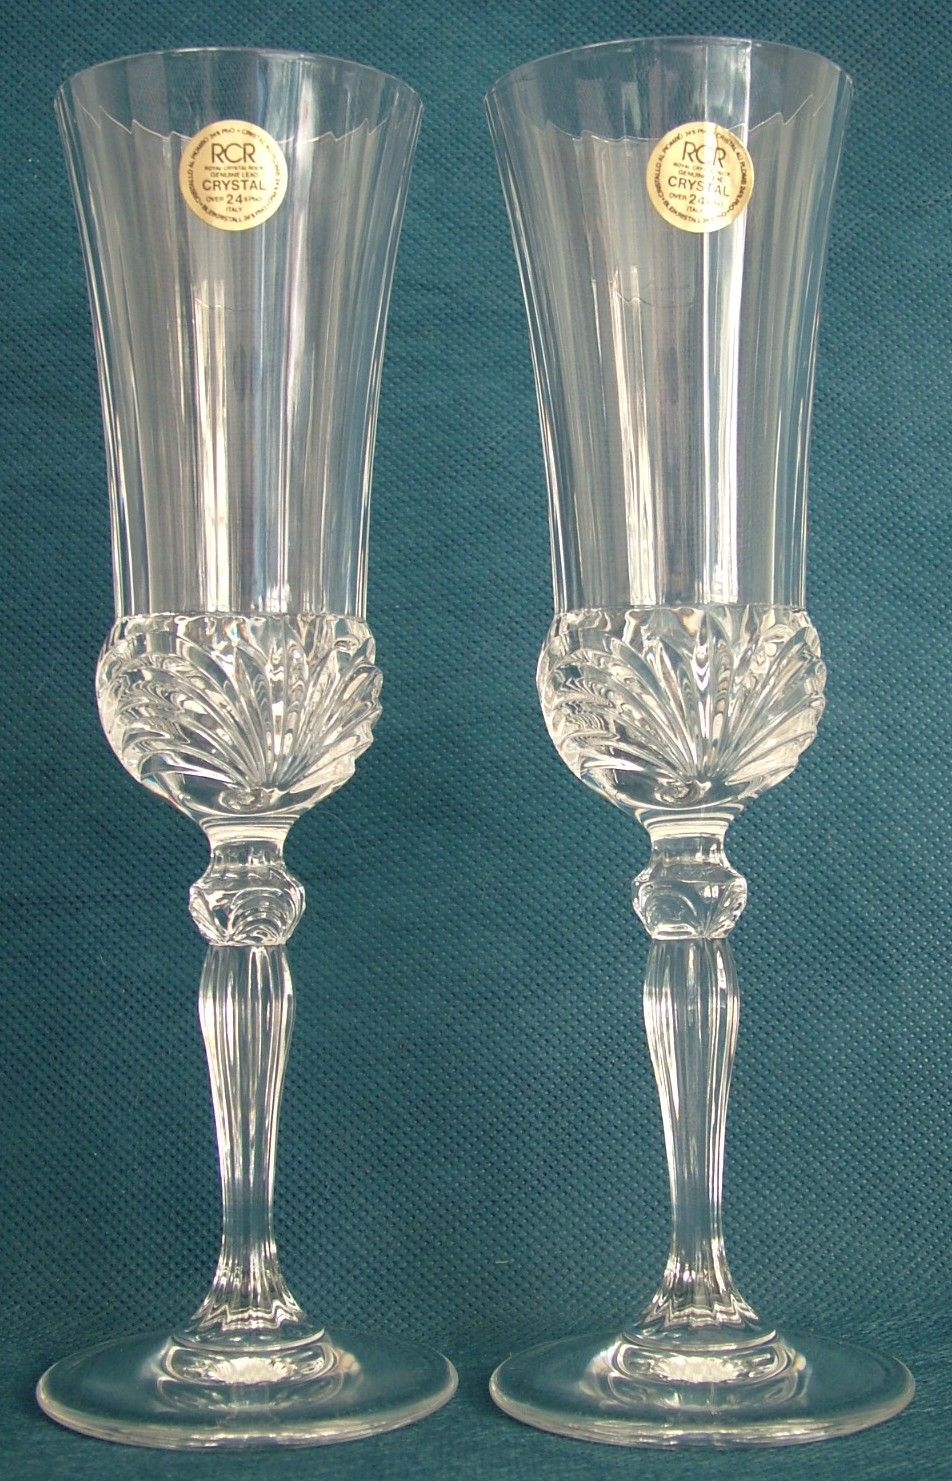 Flute A Champagne Original Pair Of Royal Crystal Rock Rcr Aurea Design Flute Champagne